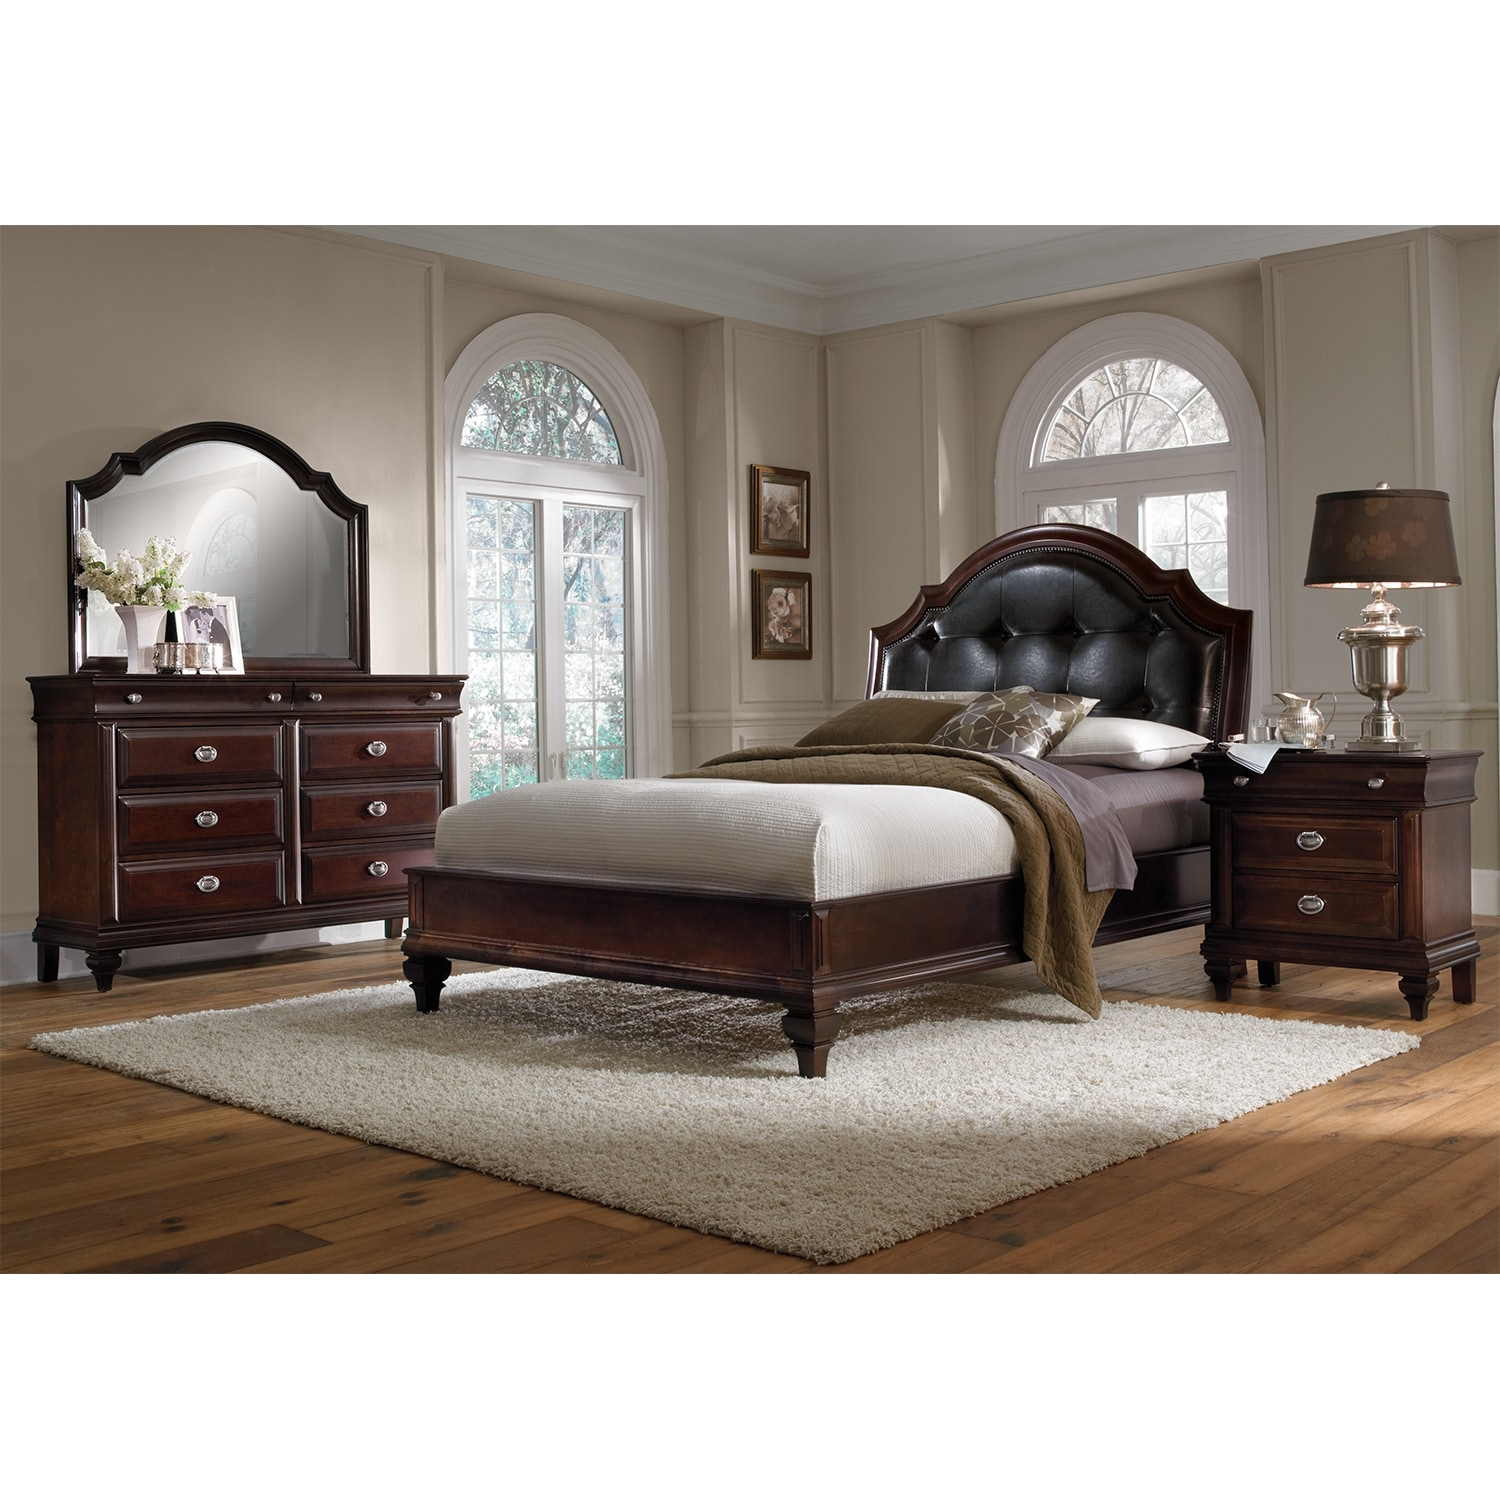 Simple Upholstered Bedroom Set Interior